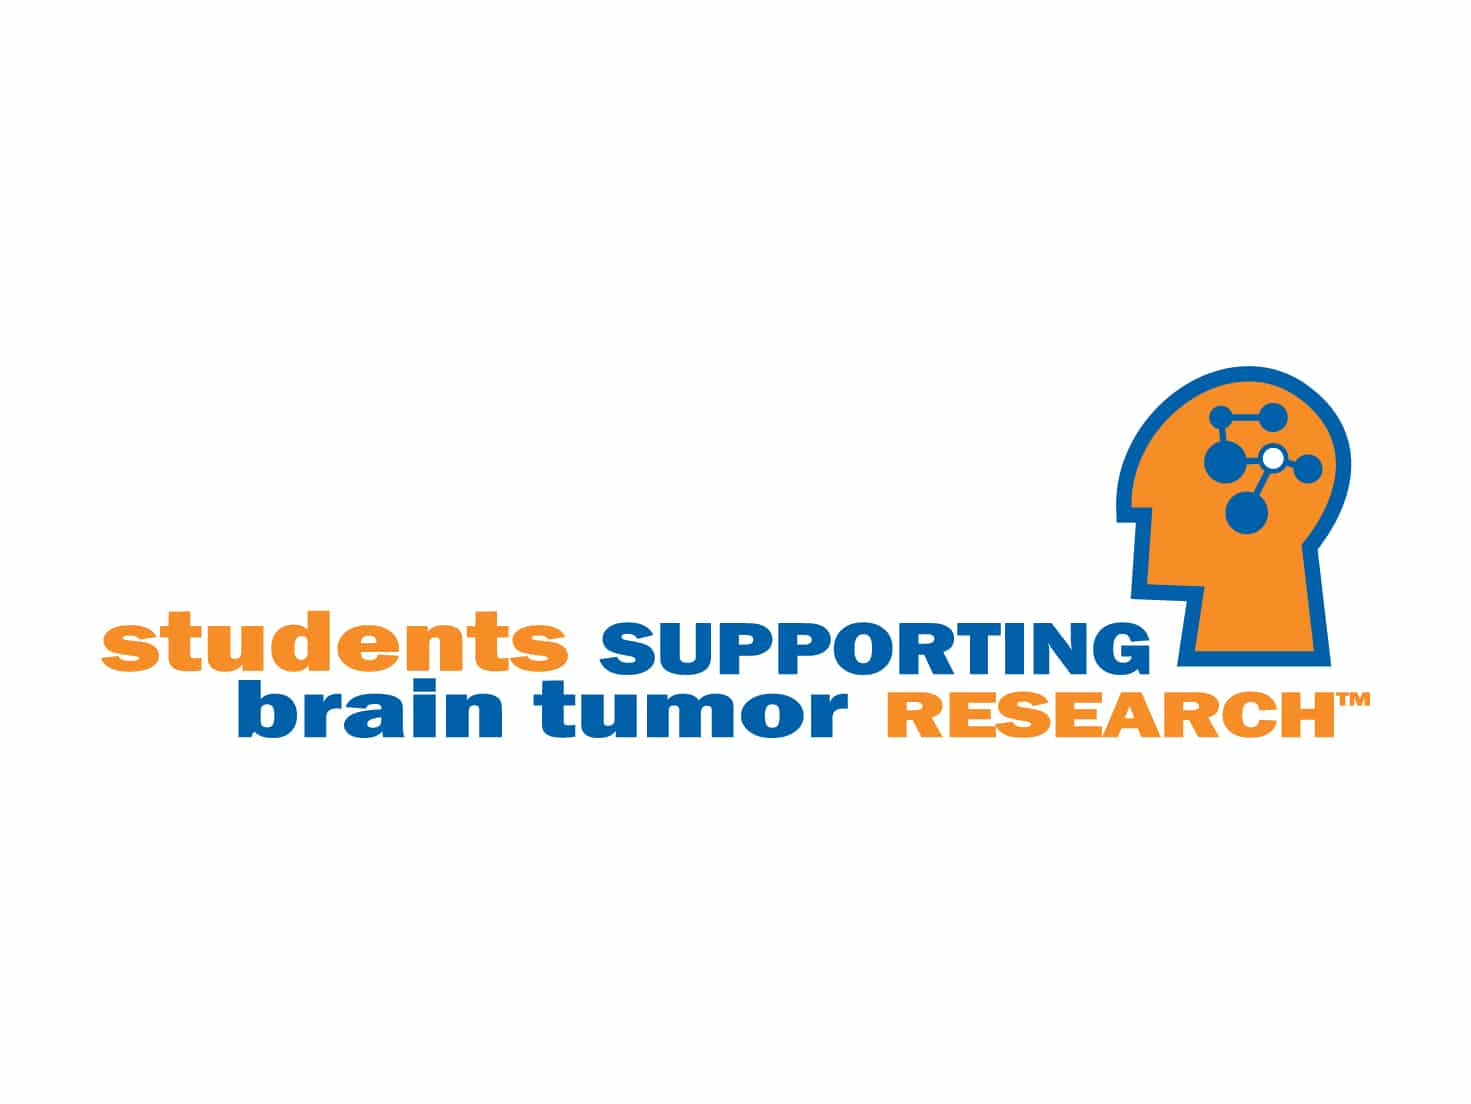 Students Supporting Brain Tumor Research